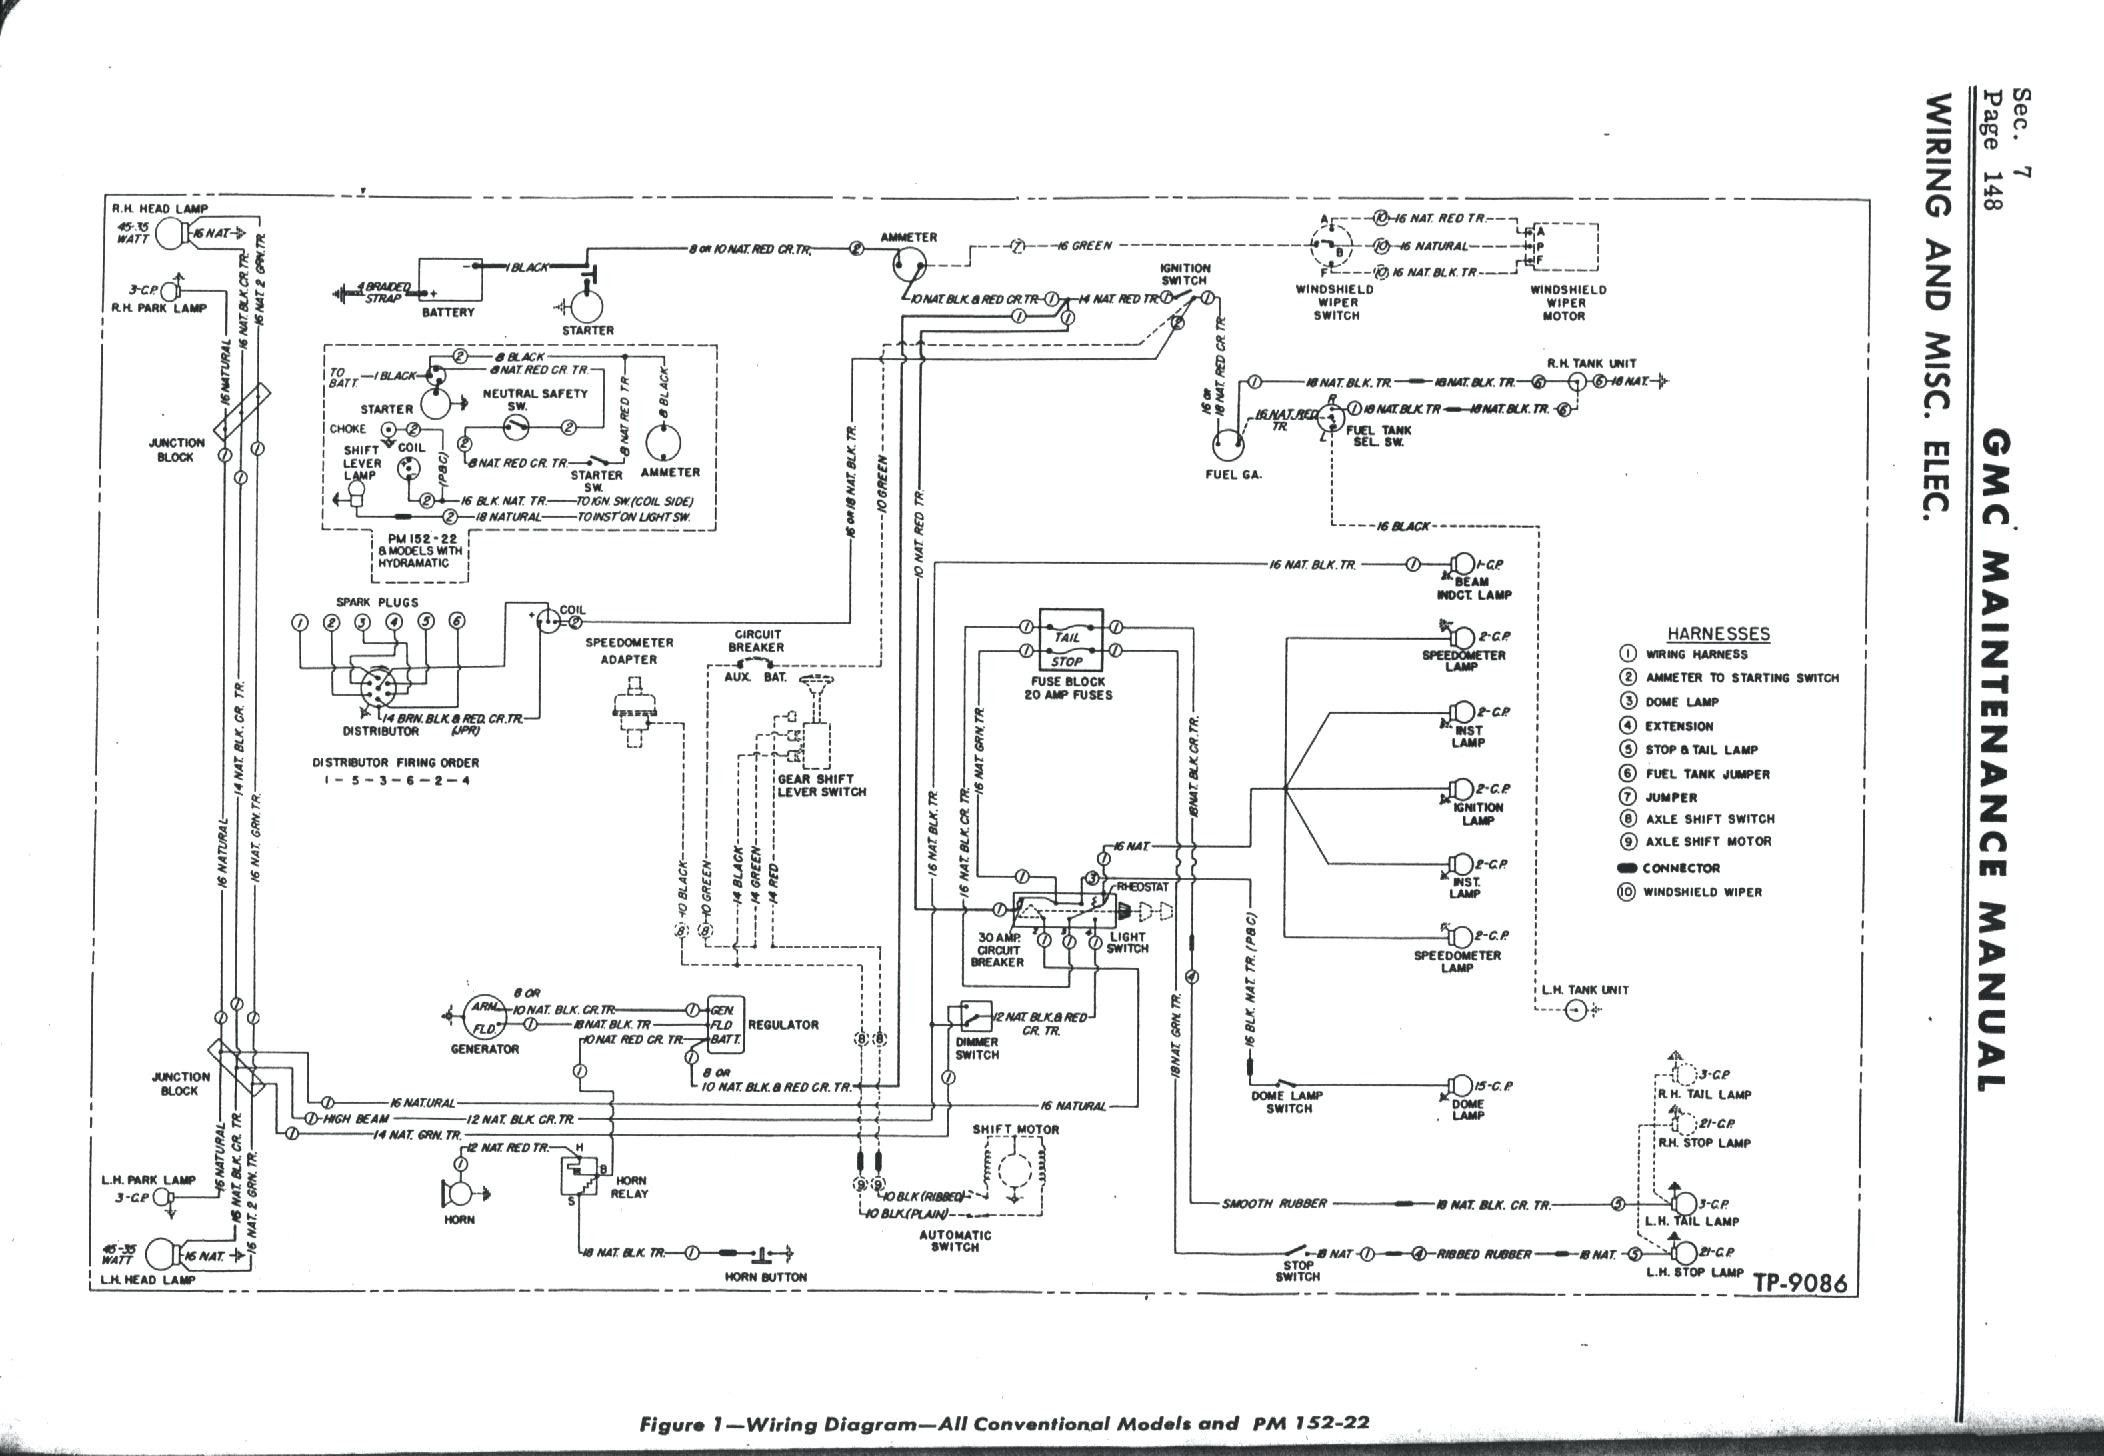 Bmw E36 Compact 318tds 1995 Ignition Switch Wiring Diagram With Start Button Auto